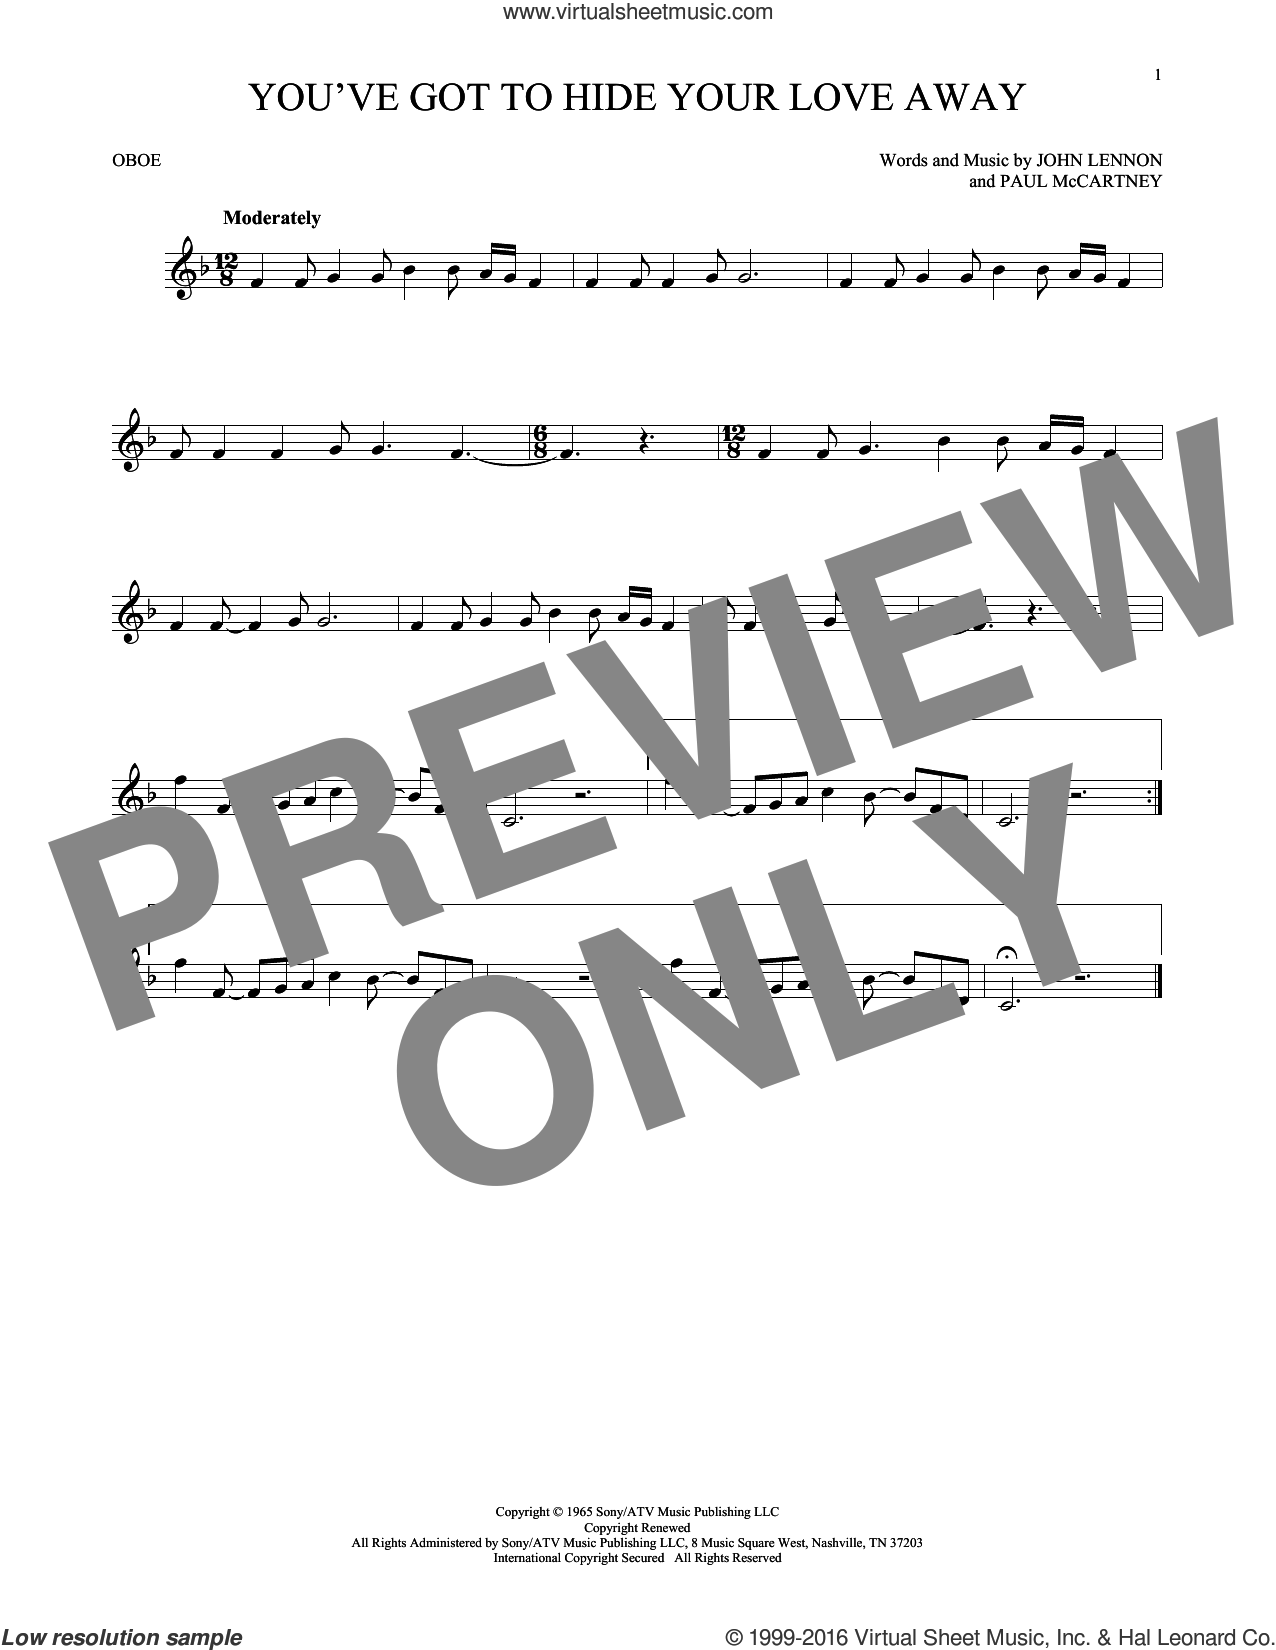 You've Got To Hide Your Love Away sheet music for oboe solo by The Beatles, John Lennon and Paul McCartney, intermediate. Score Image Preview.